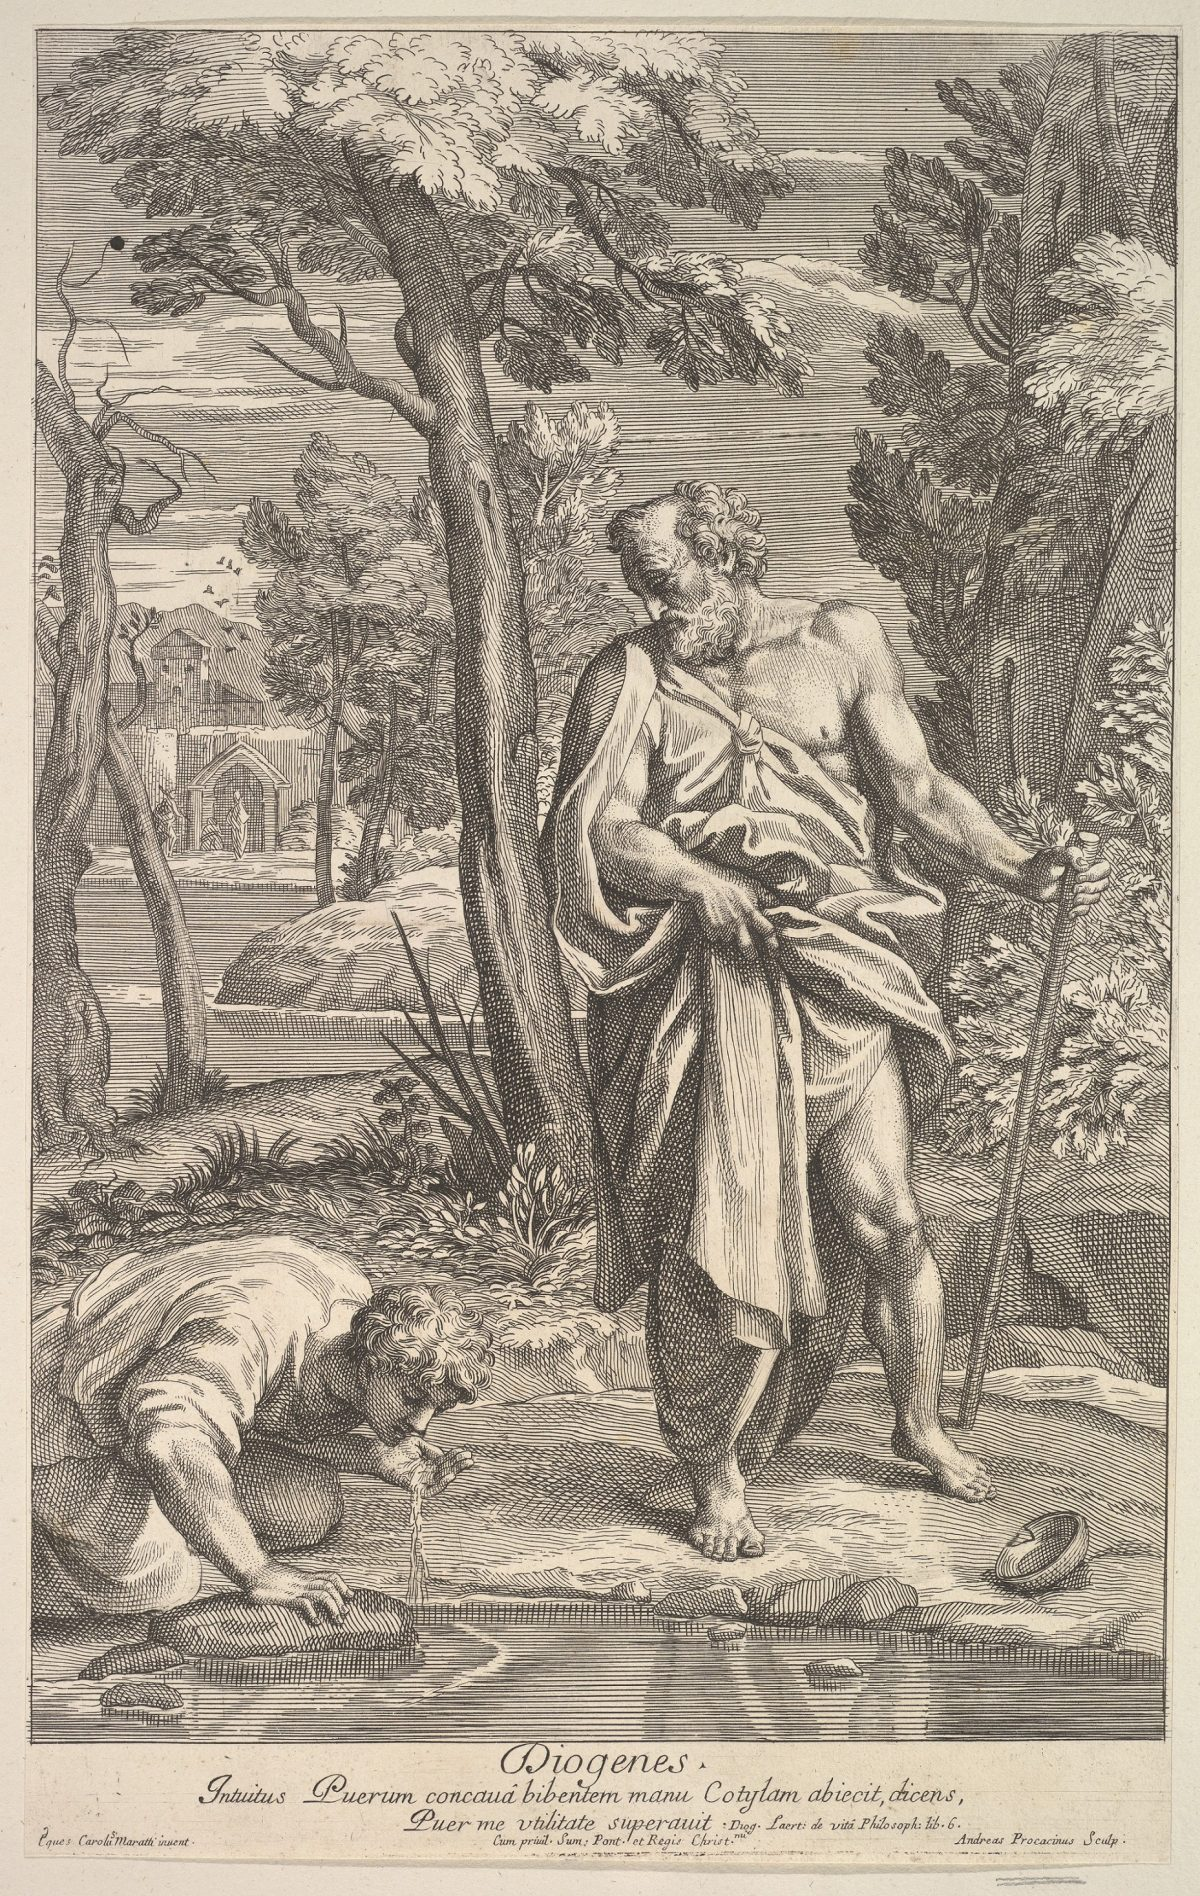 Man in robes Diogenes and man by river